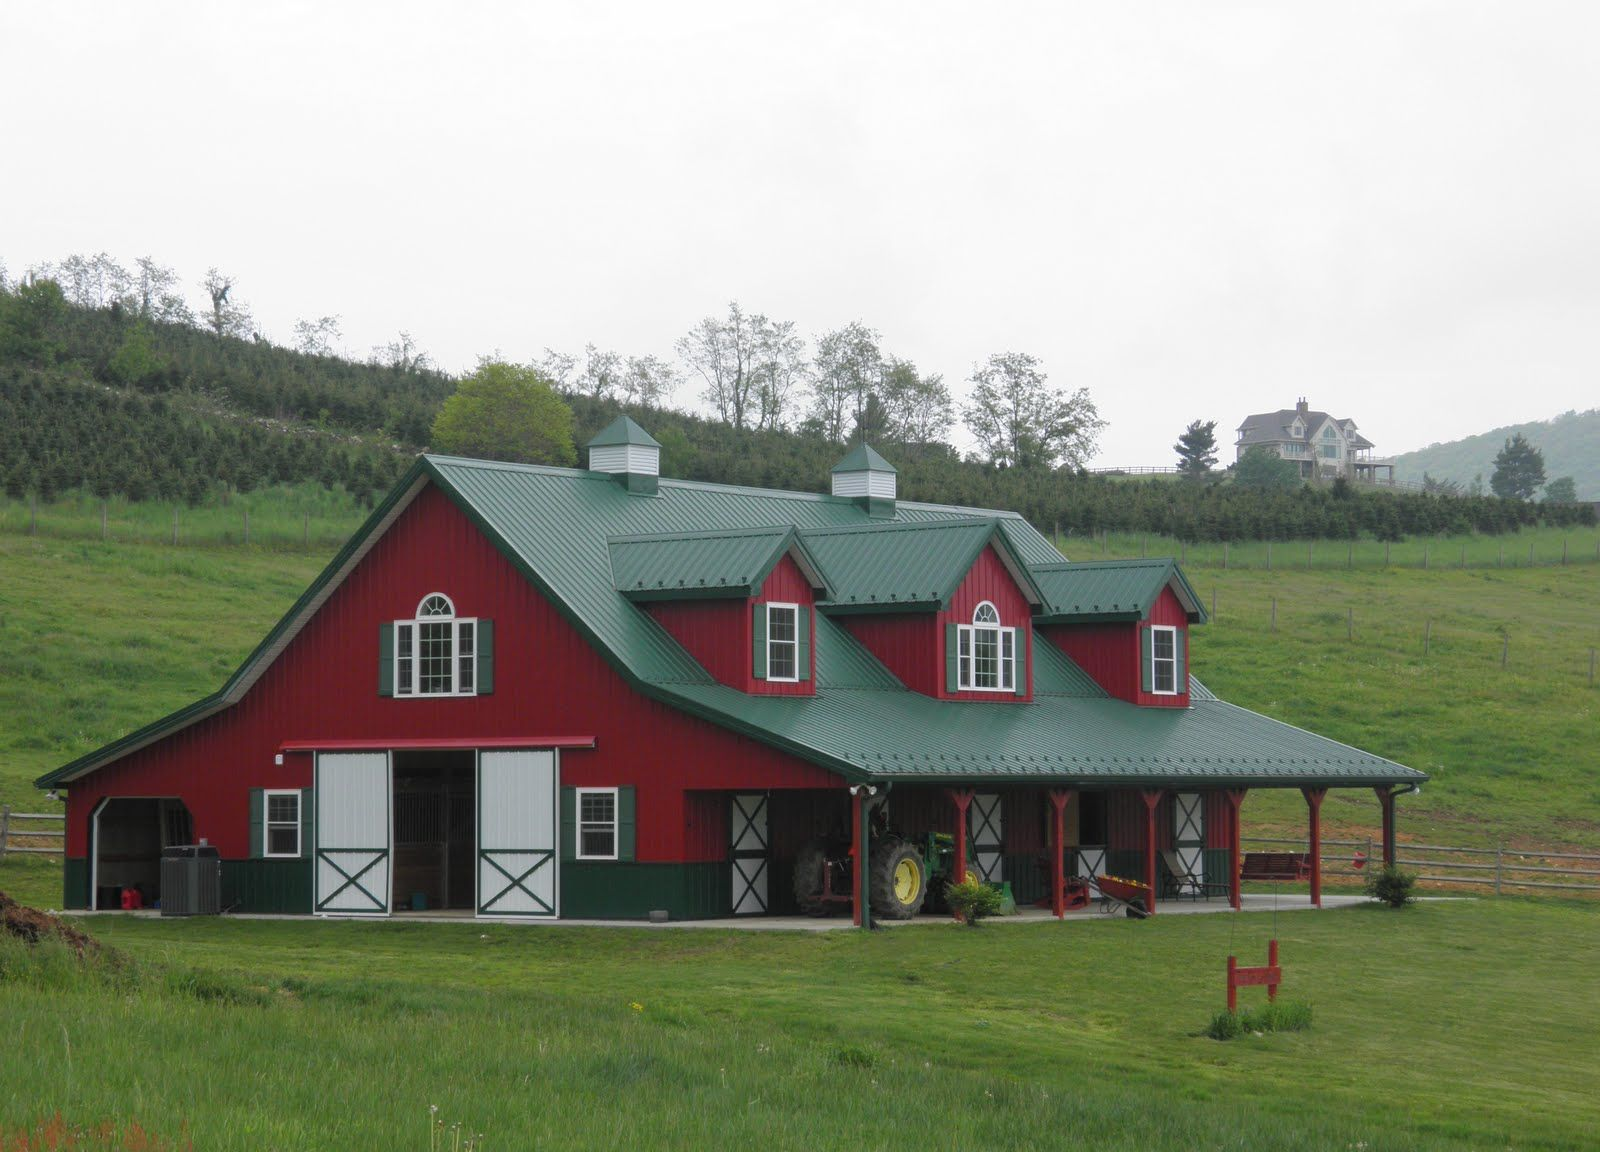 House that looks like red barn images at home in the for Steel house plans